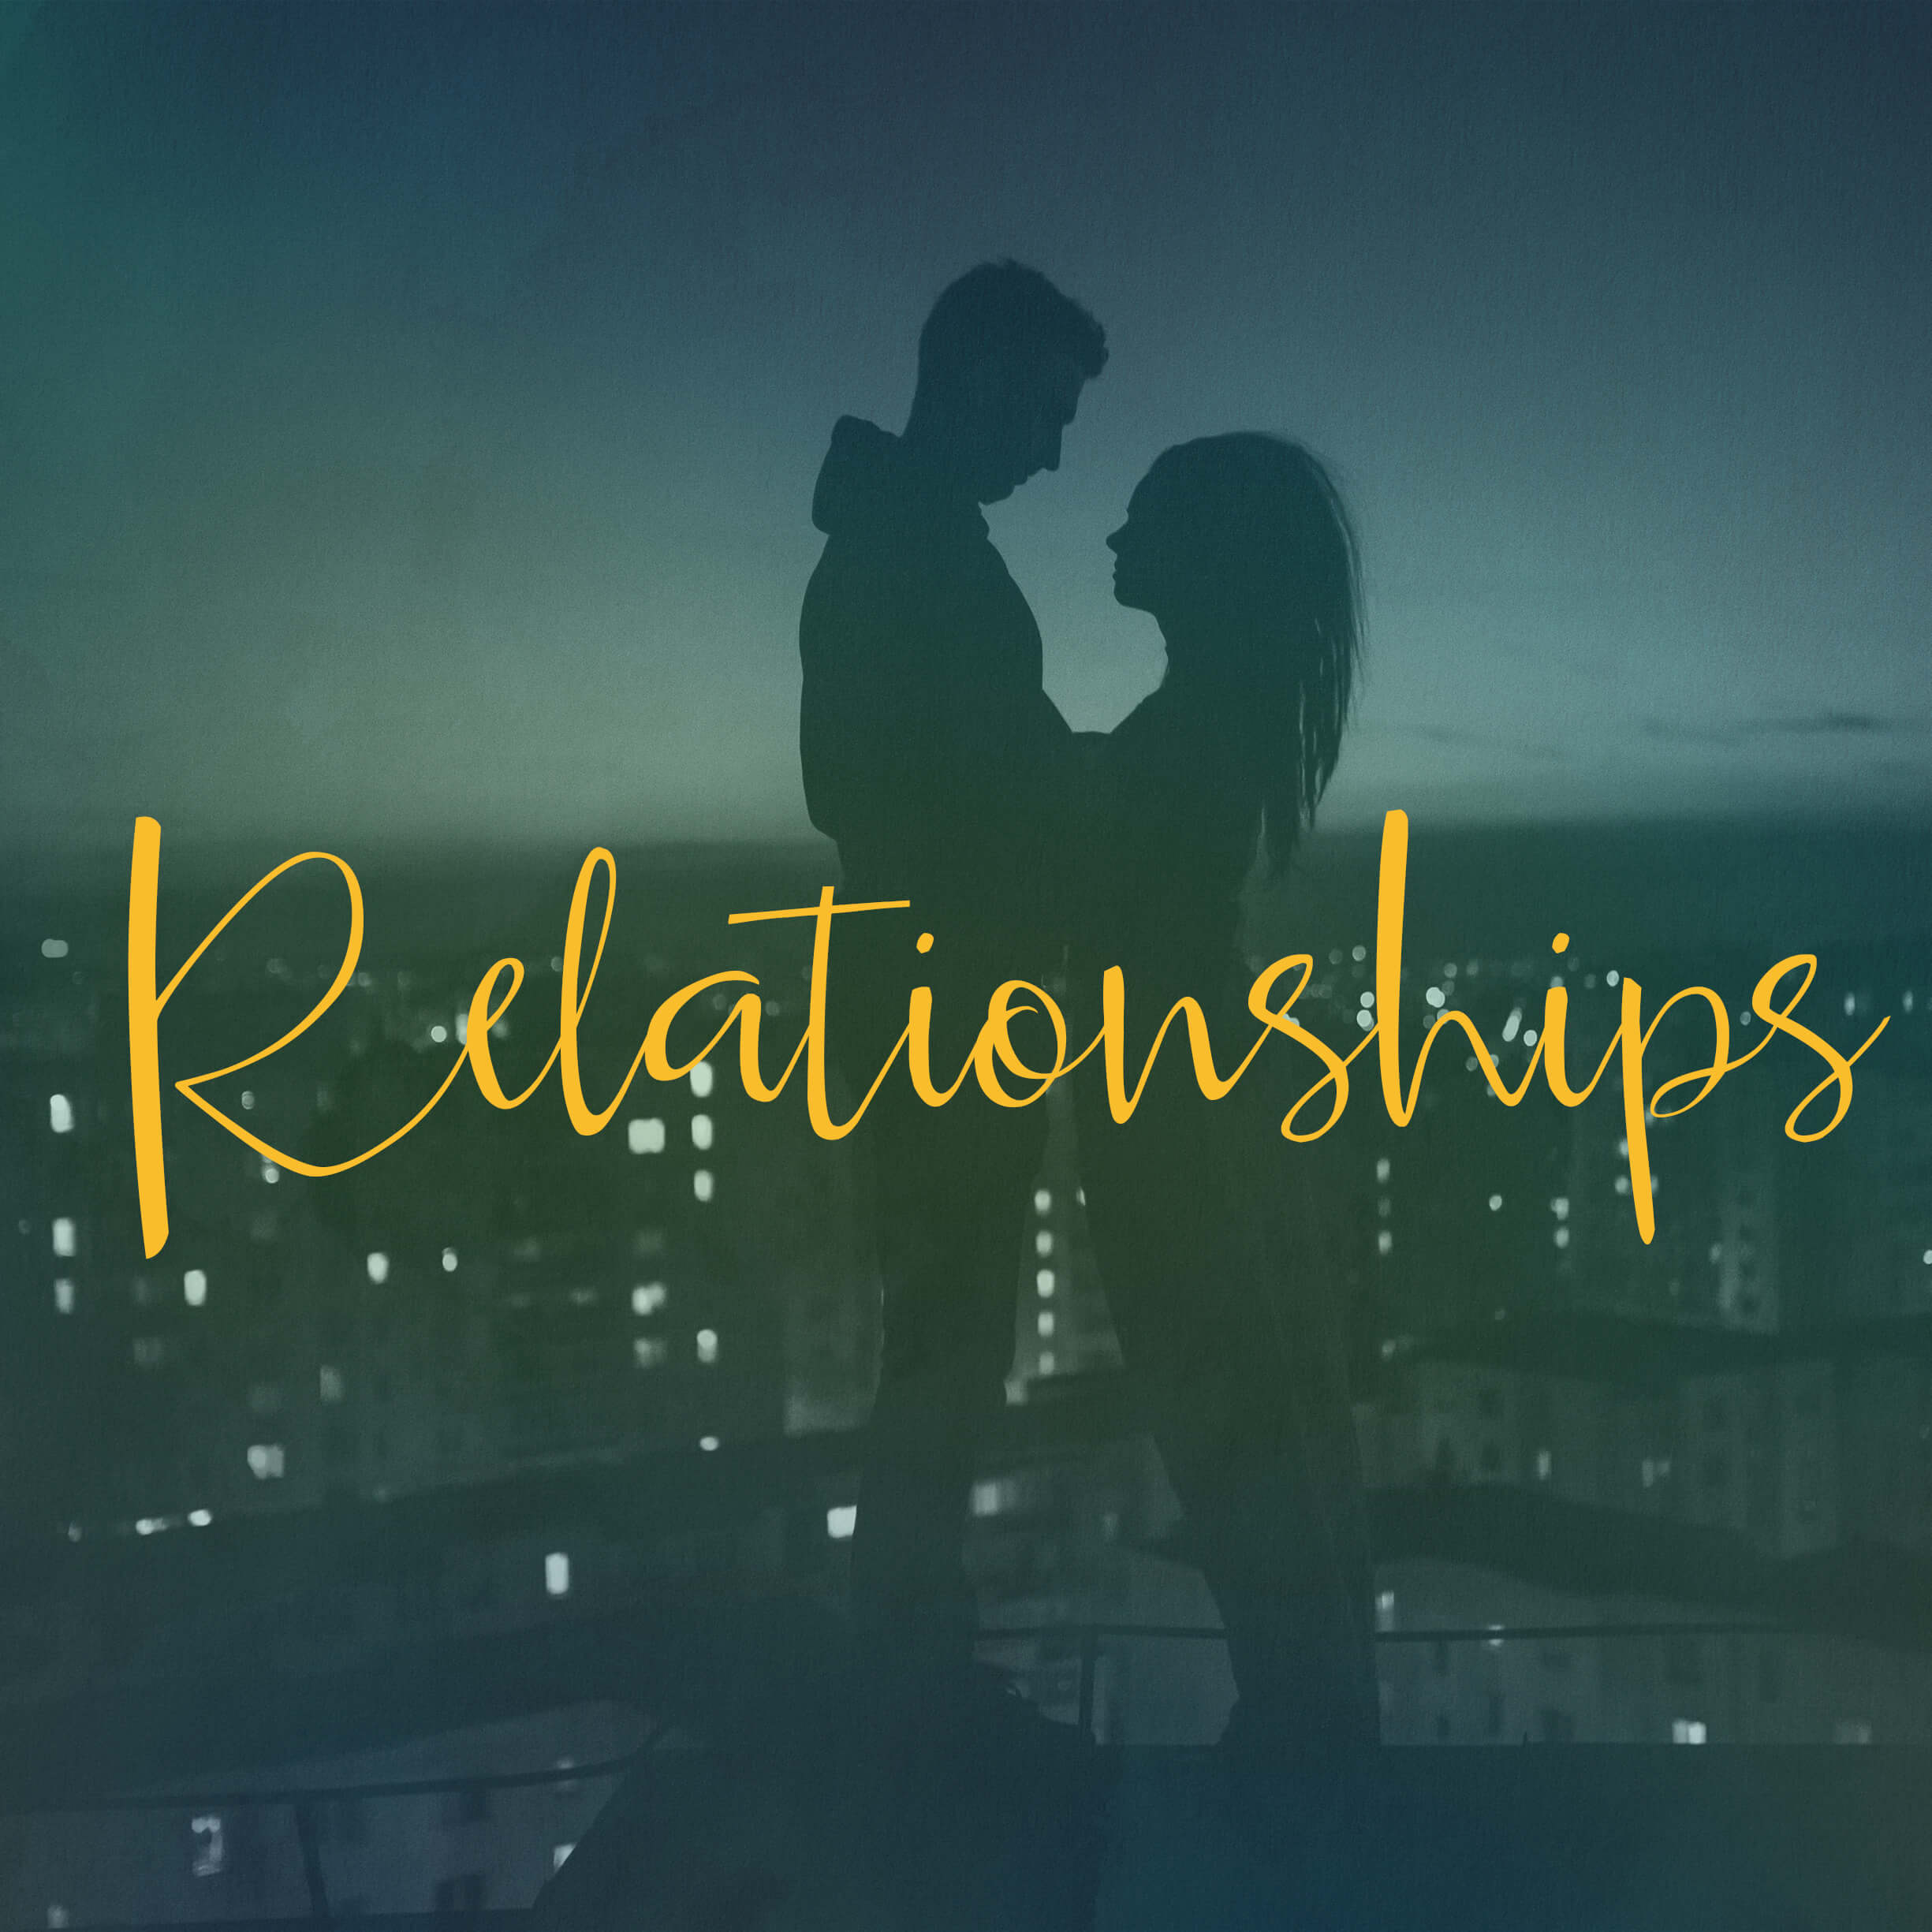 Therapy and counseling for dating relationships heartbreak unhealthy relationship counseling therapy brickell solutioingenieria Choice Image